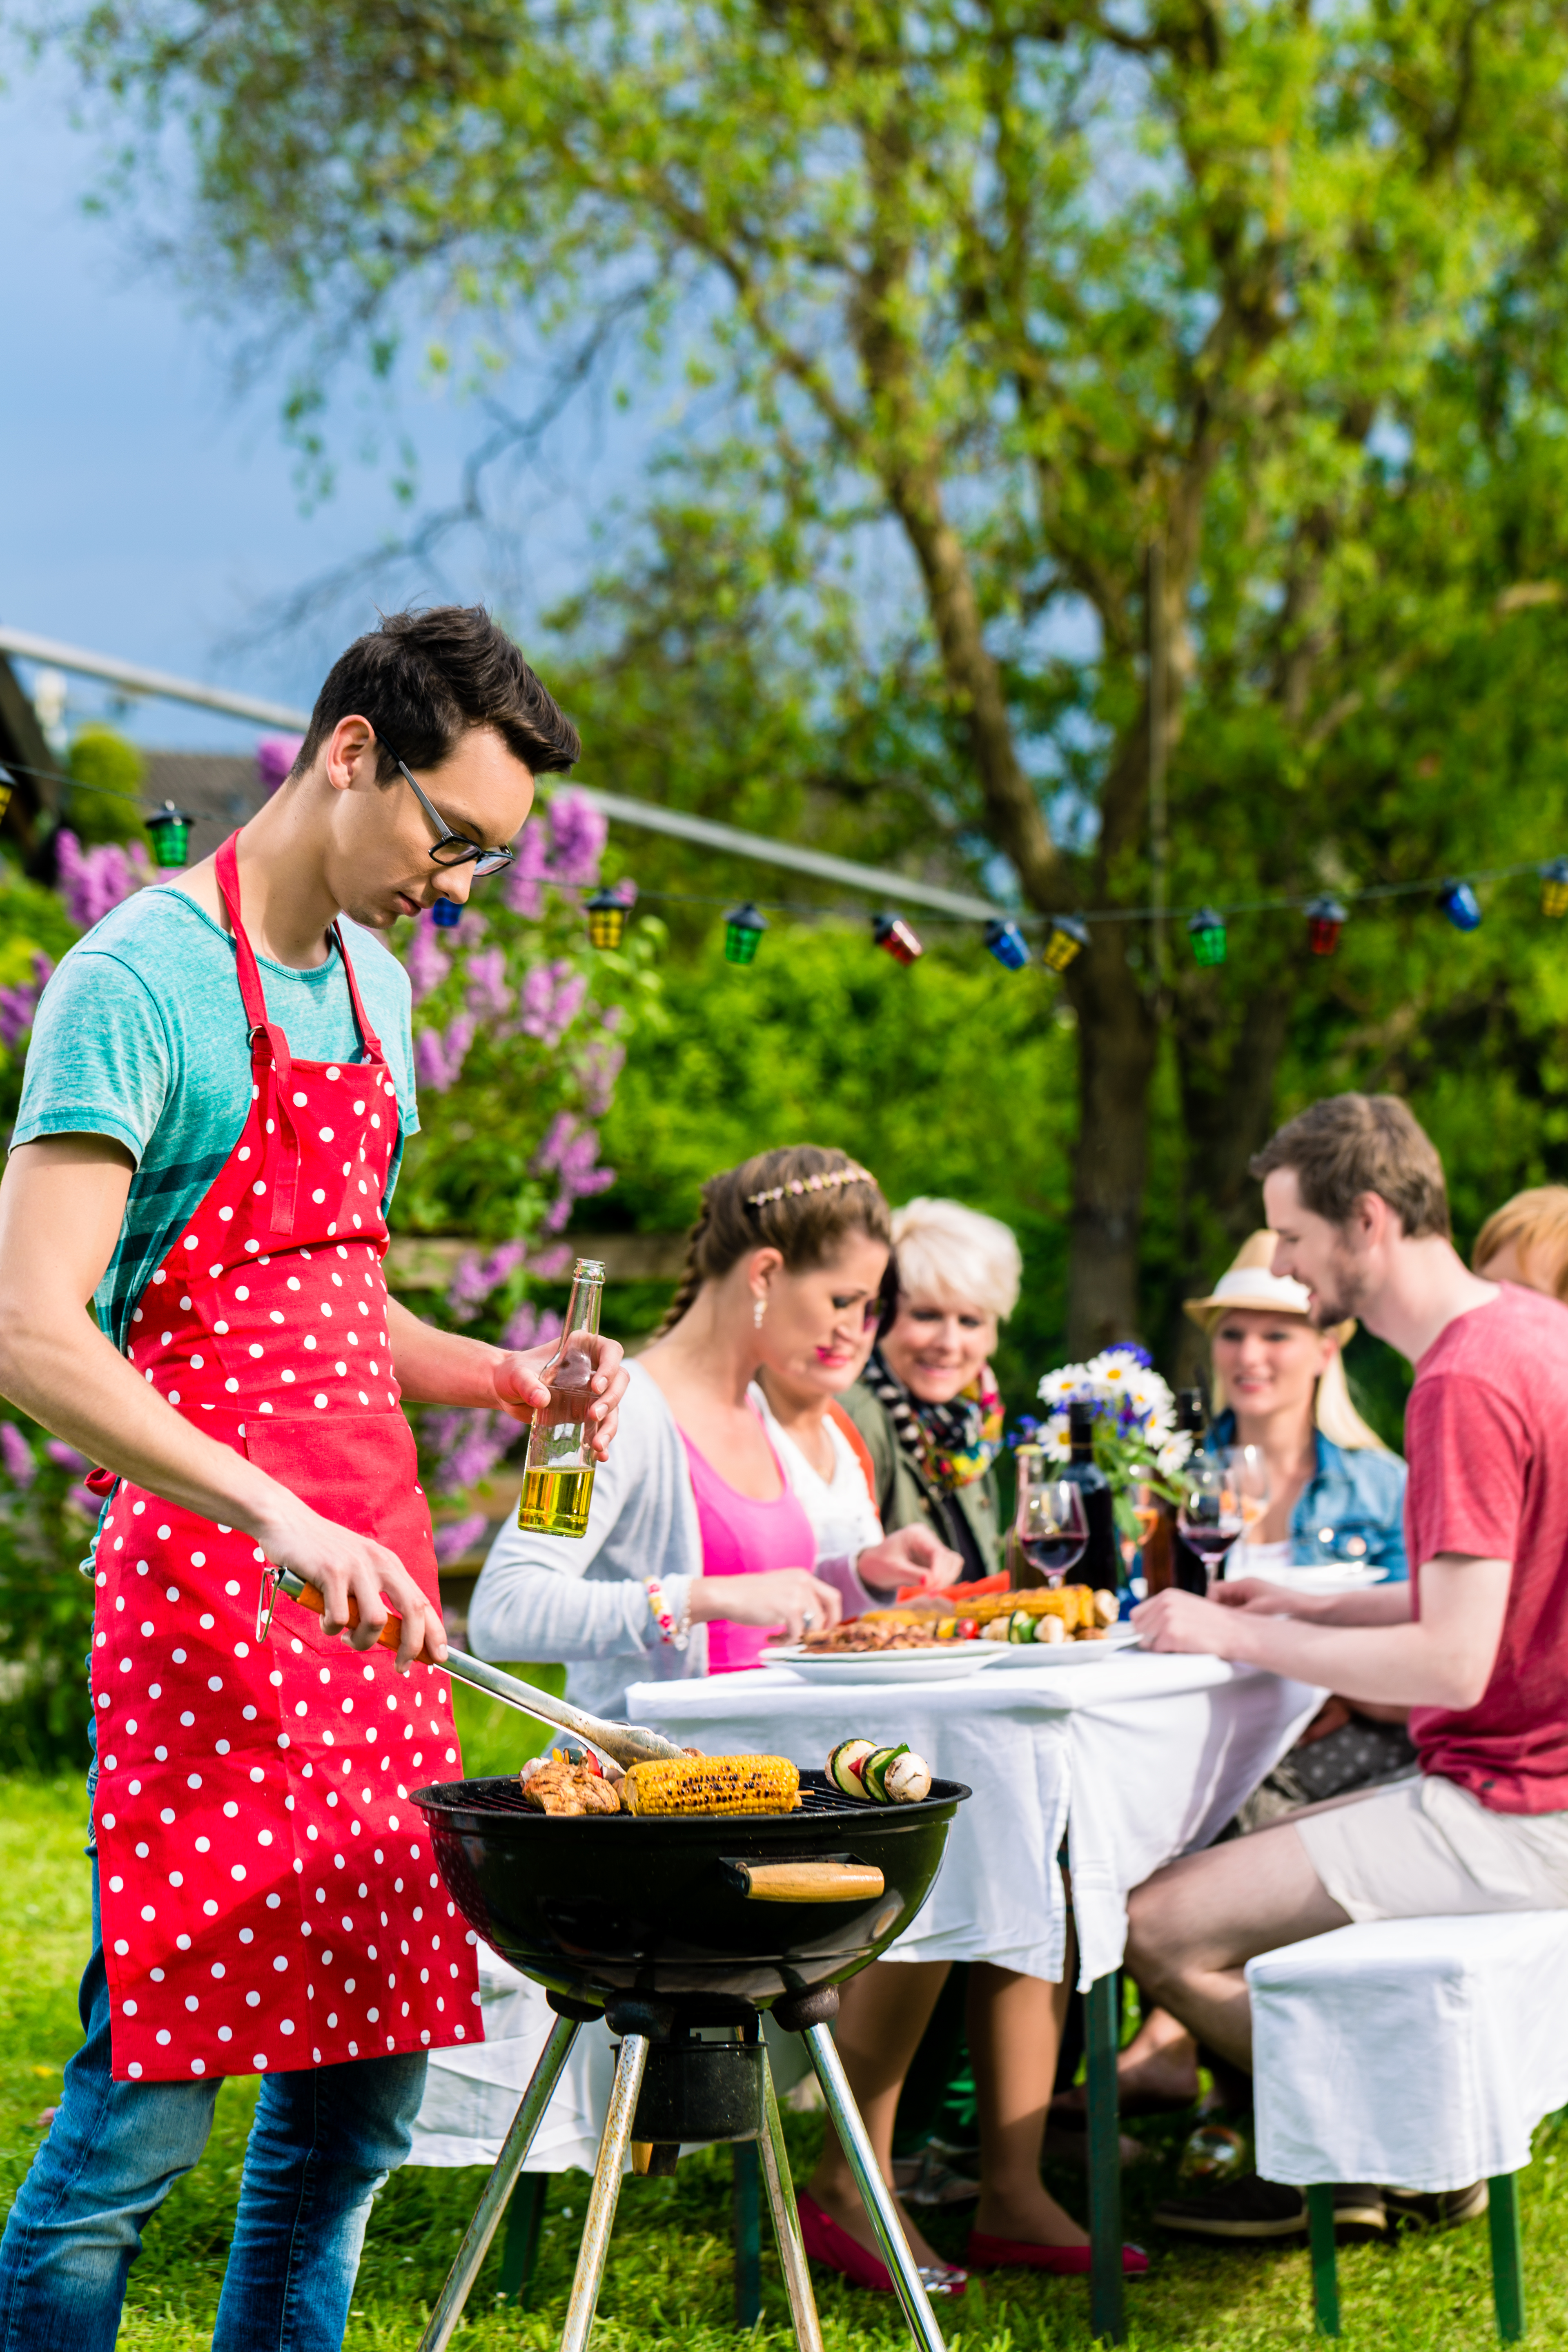 Man grilling meat on garden barbecue party, property management